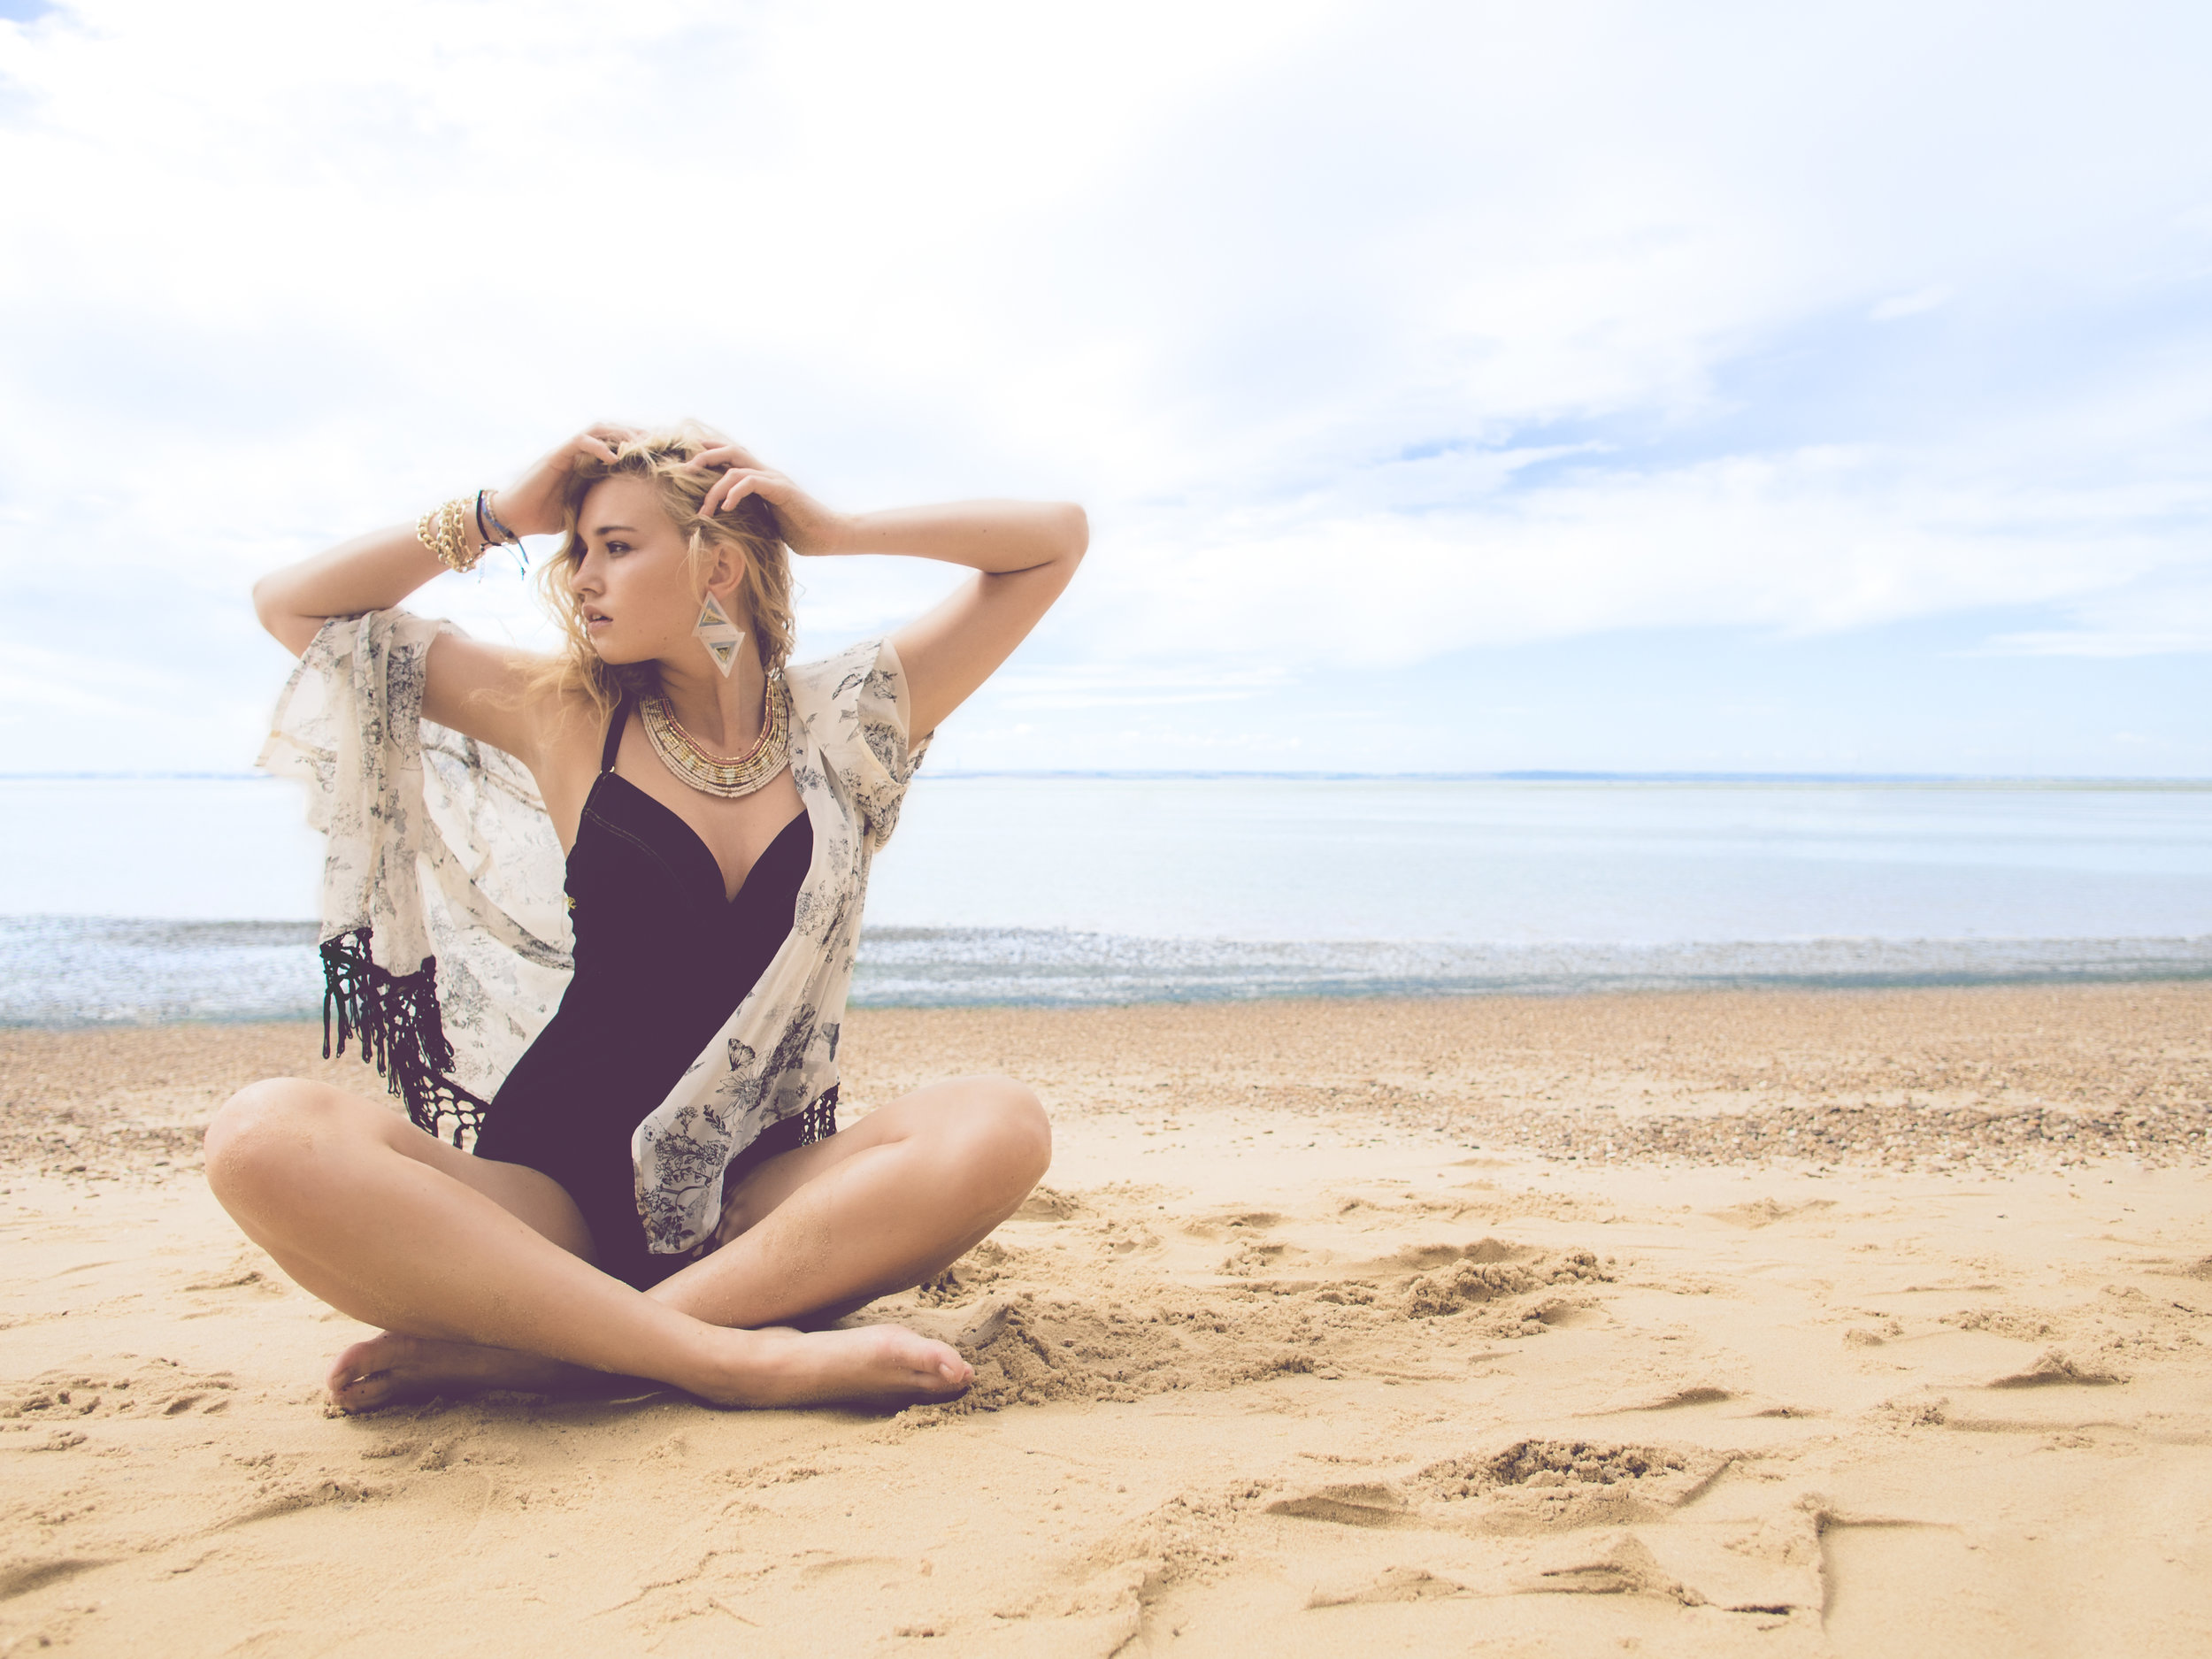 Olympus PEN 12mm f/2.0 Lens Wide Angle Slink Magazine Editorial Photoshoot Plus Size Beach Swimwear Sand Essex Leigh on Sea Southend Gok Wan Model